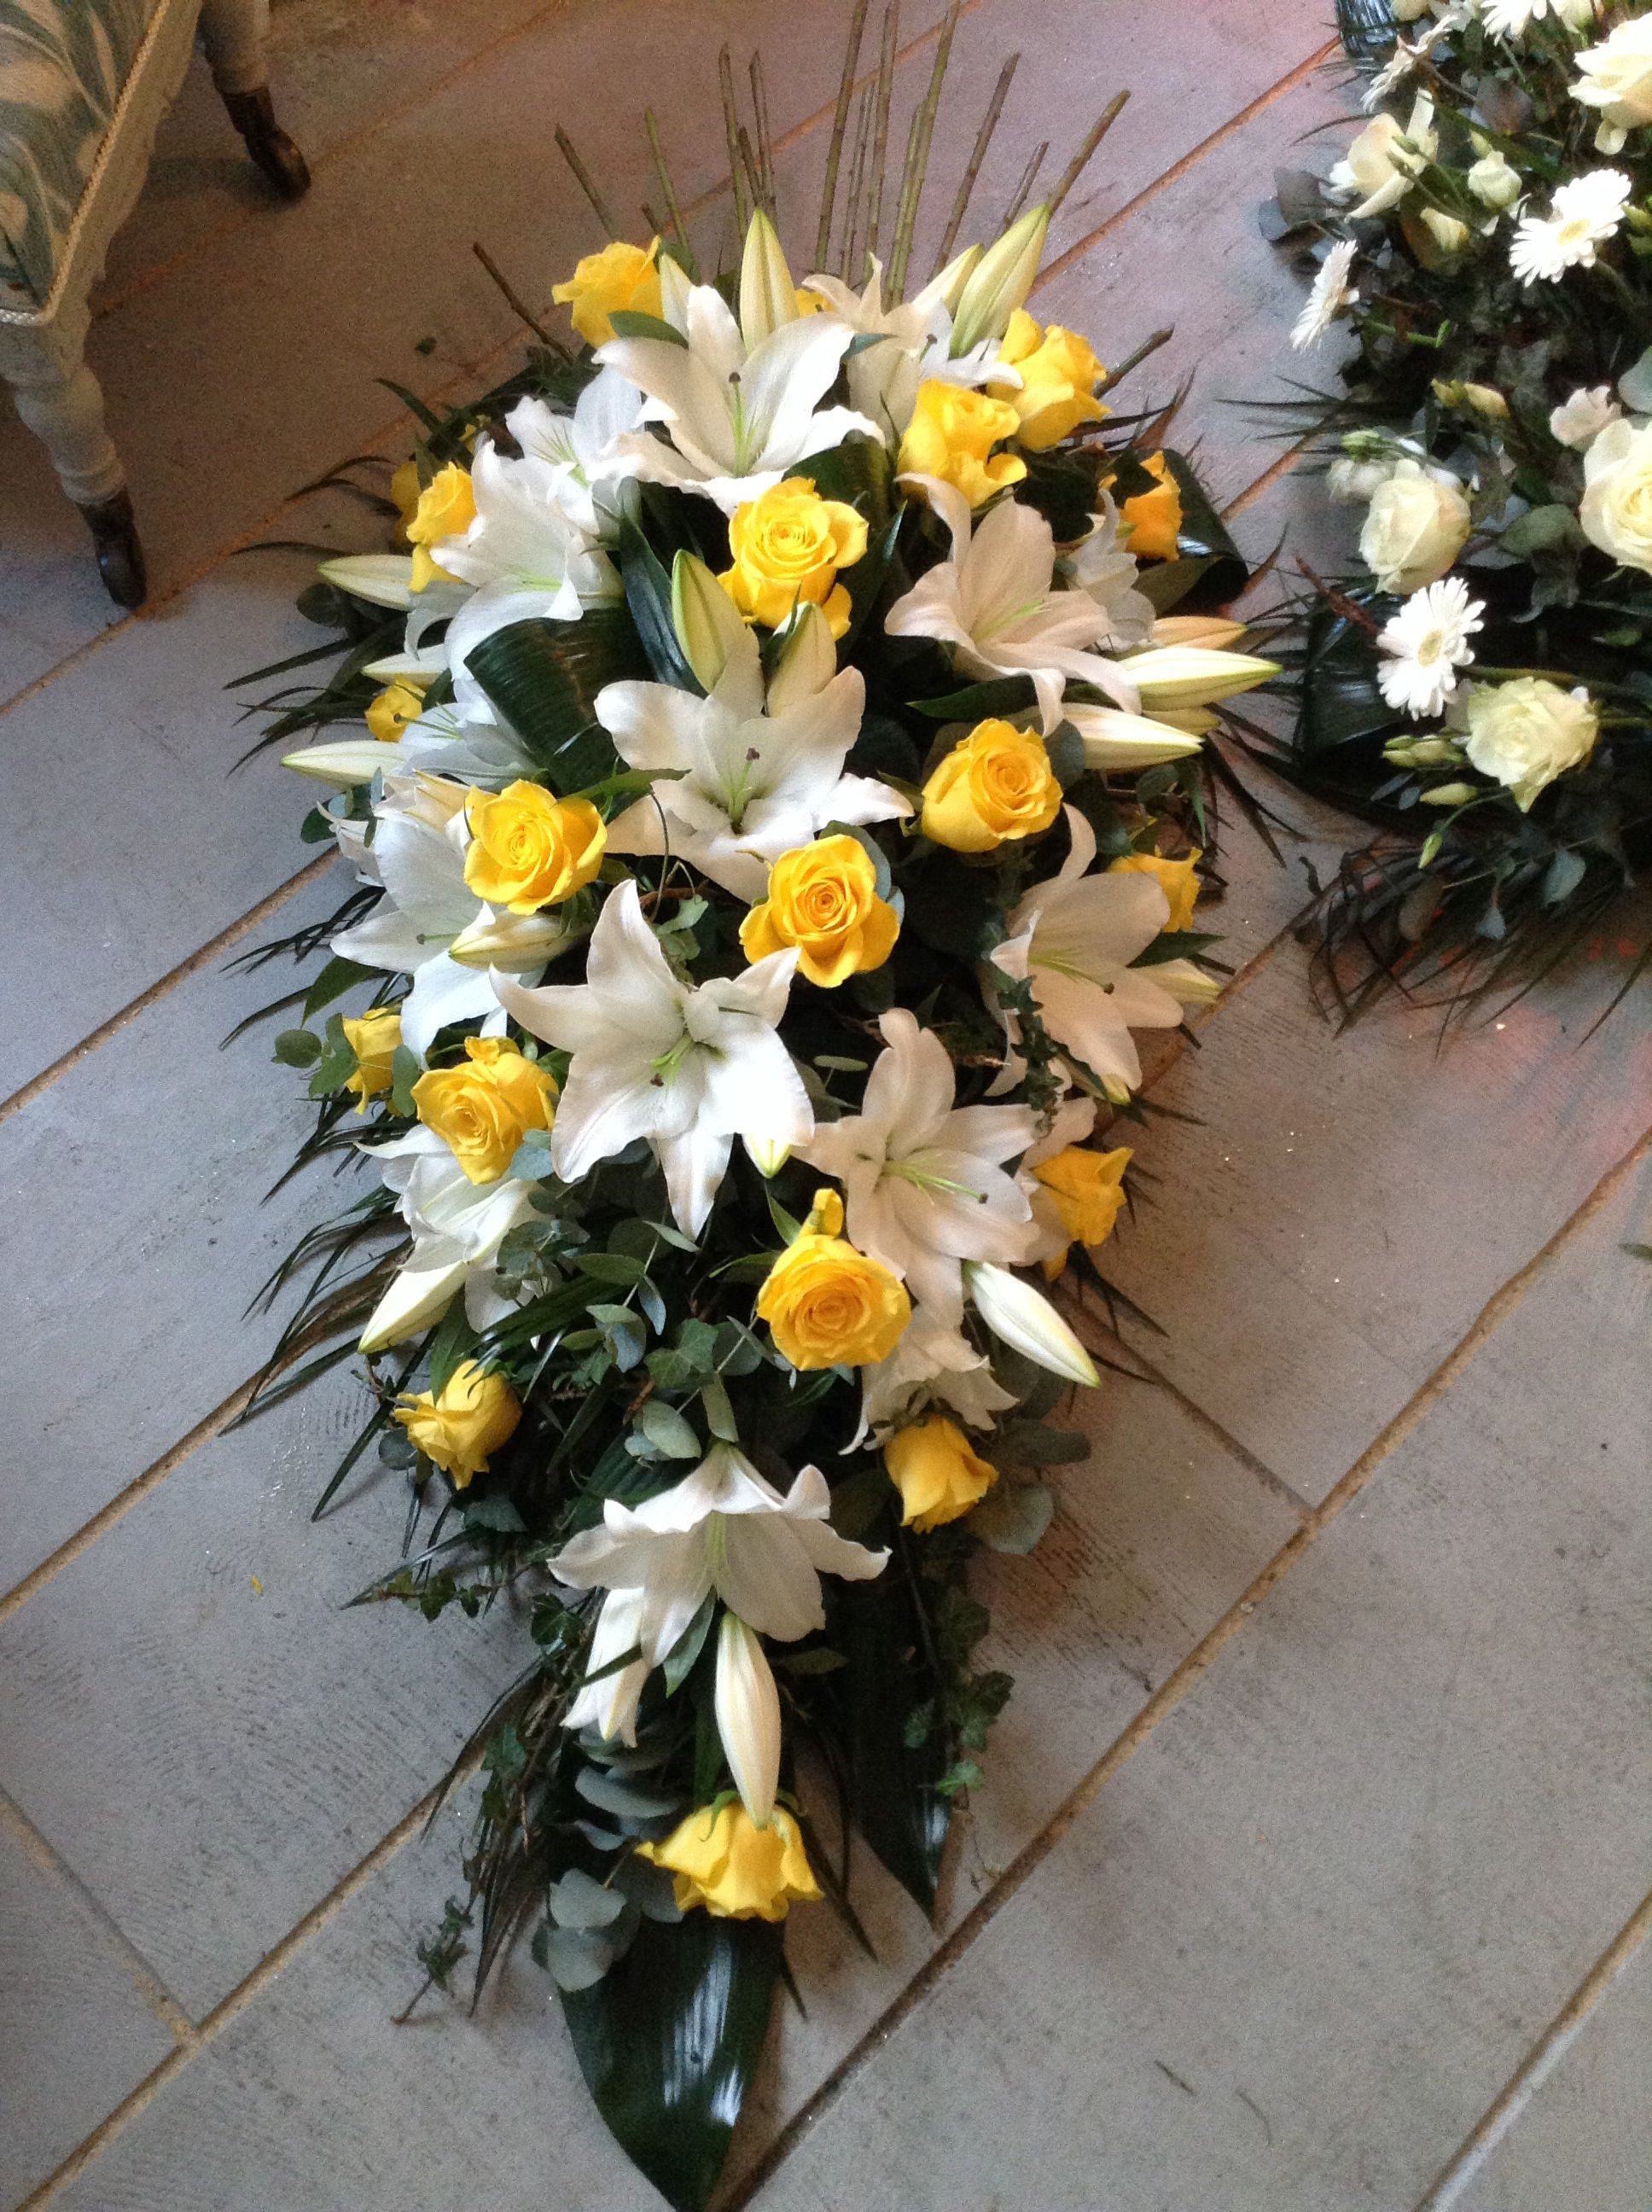 Funeral Flowers White lily and yellow rose funeral spray casket spray Funeral flowers